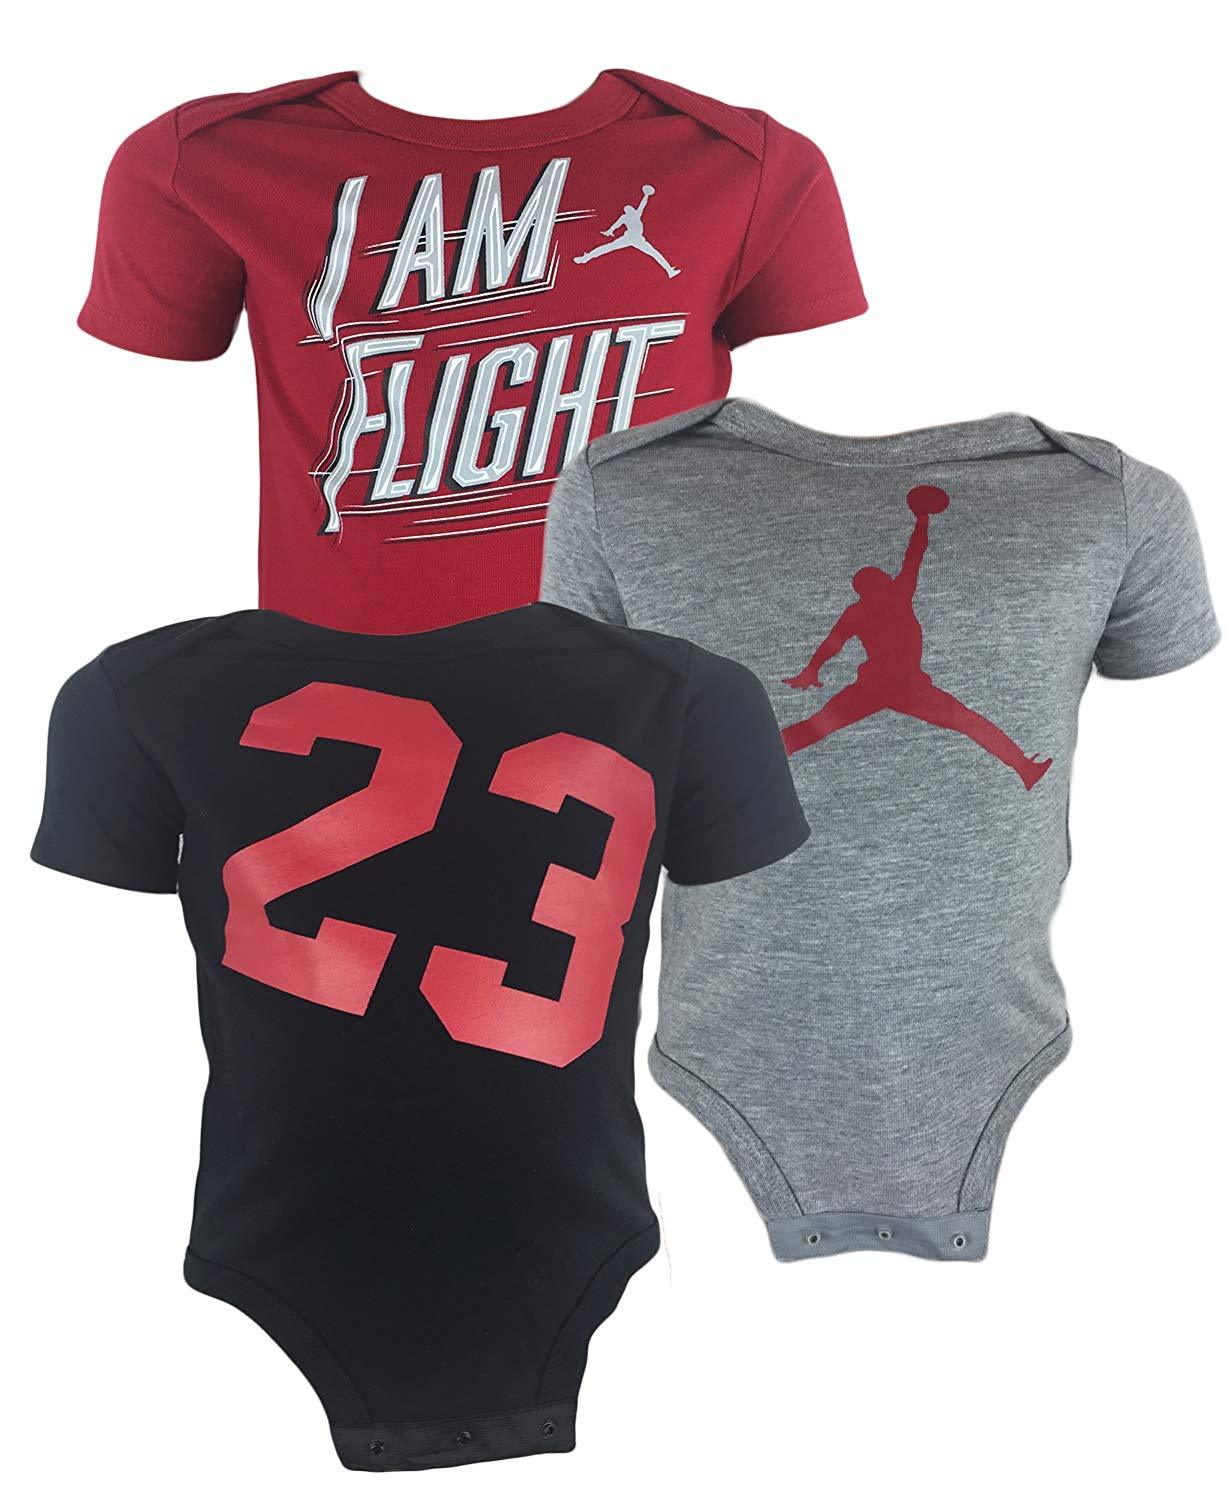 b8e7d862422 Kids Boys: Air Jordan Infant Baby Bodysuit Set - Baby Clothes, Baby ...